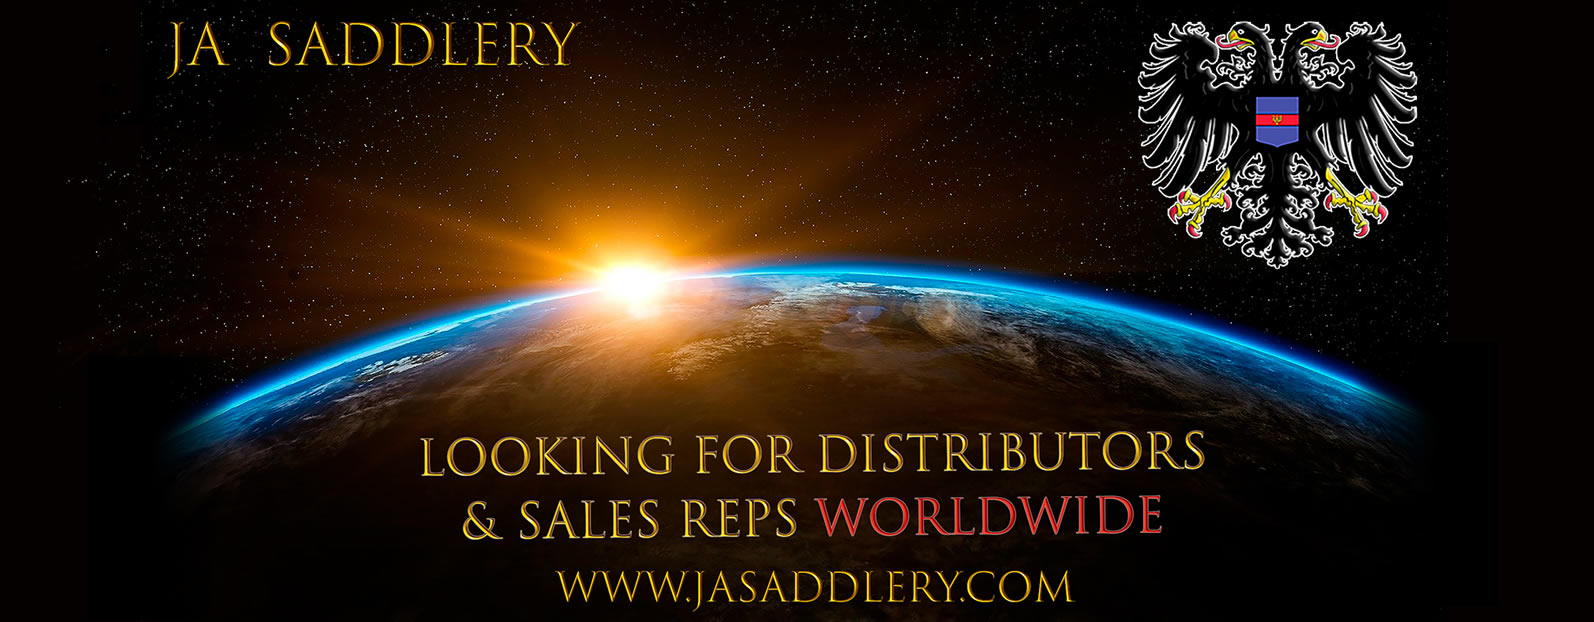 JASaddlery is looking for distributors